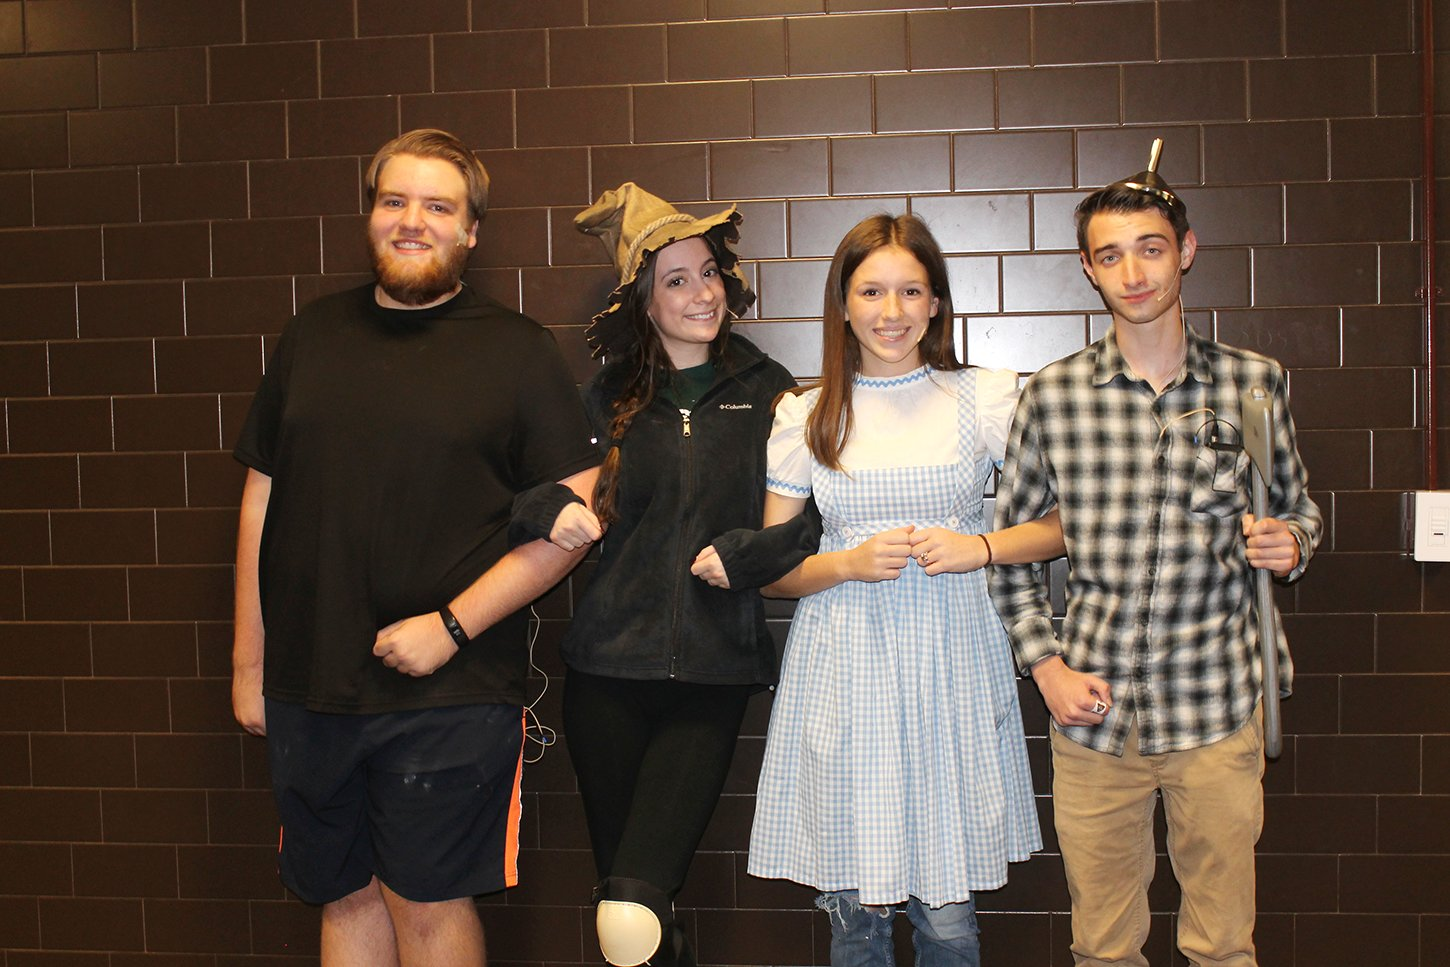 """The Wizard of Oz"" cast includes (l-r) Andrew Solley as the Cowardly Lion, Bethany Wright as the Scarecrow, Lillie Jewell as Dorothy and Zach Demers as the Tin Man."